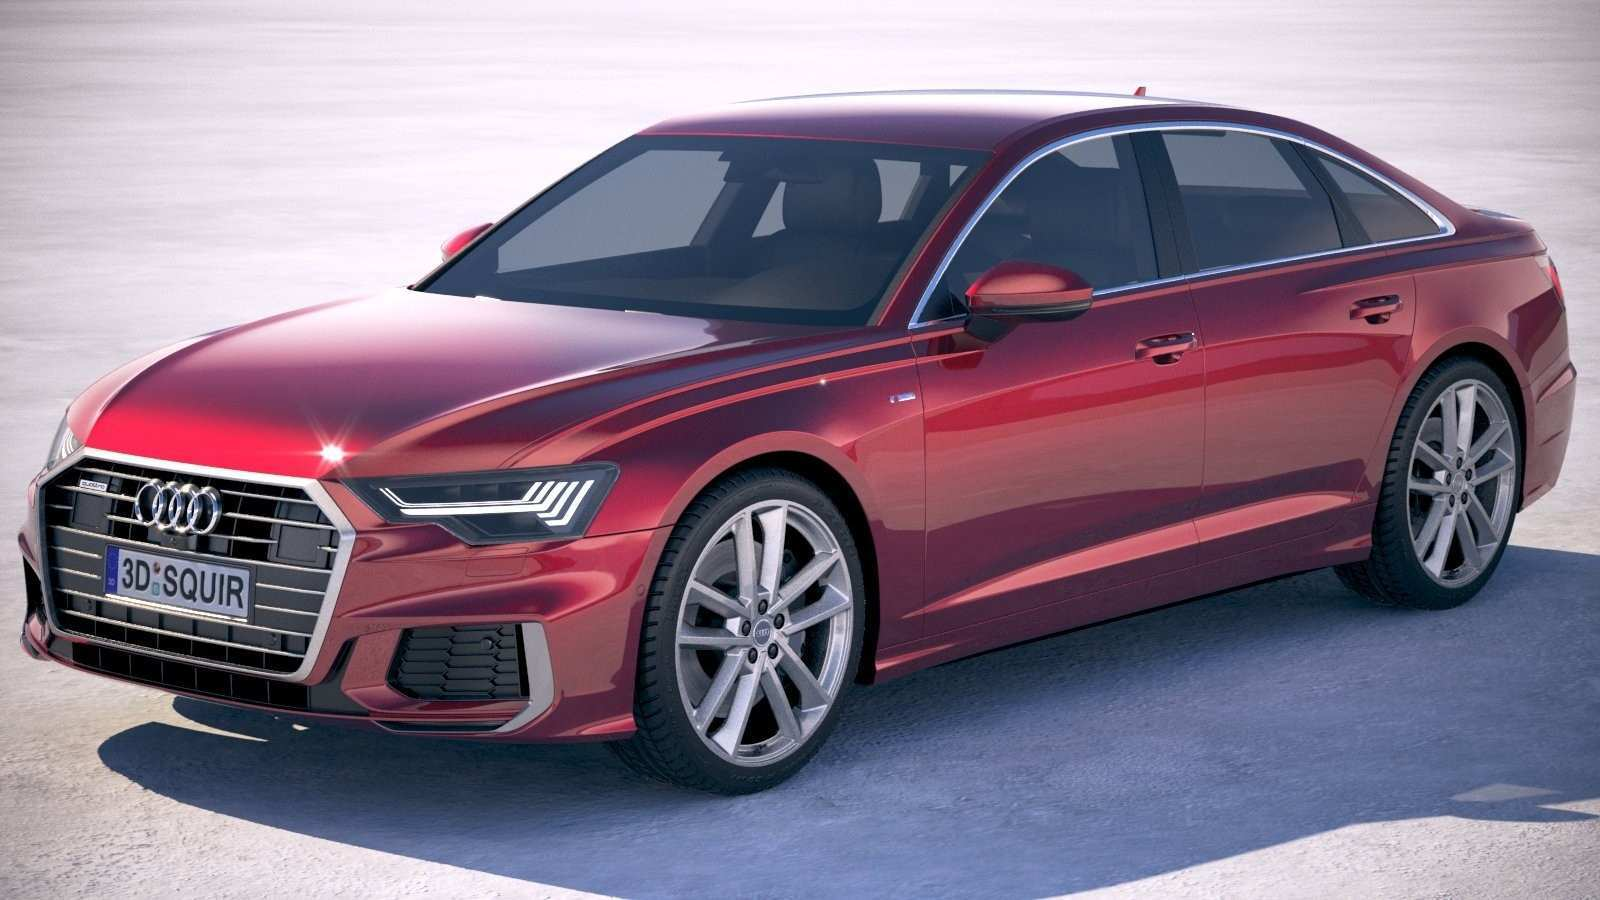 25 New Audi Mpv 2019 Redesign Images with Audi Mpv 2019 Redesign